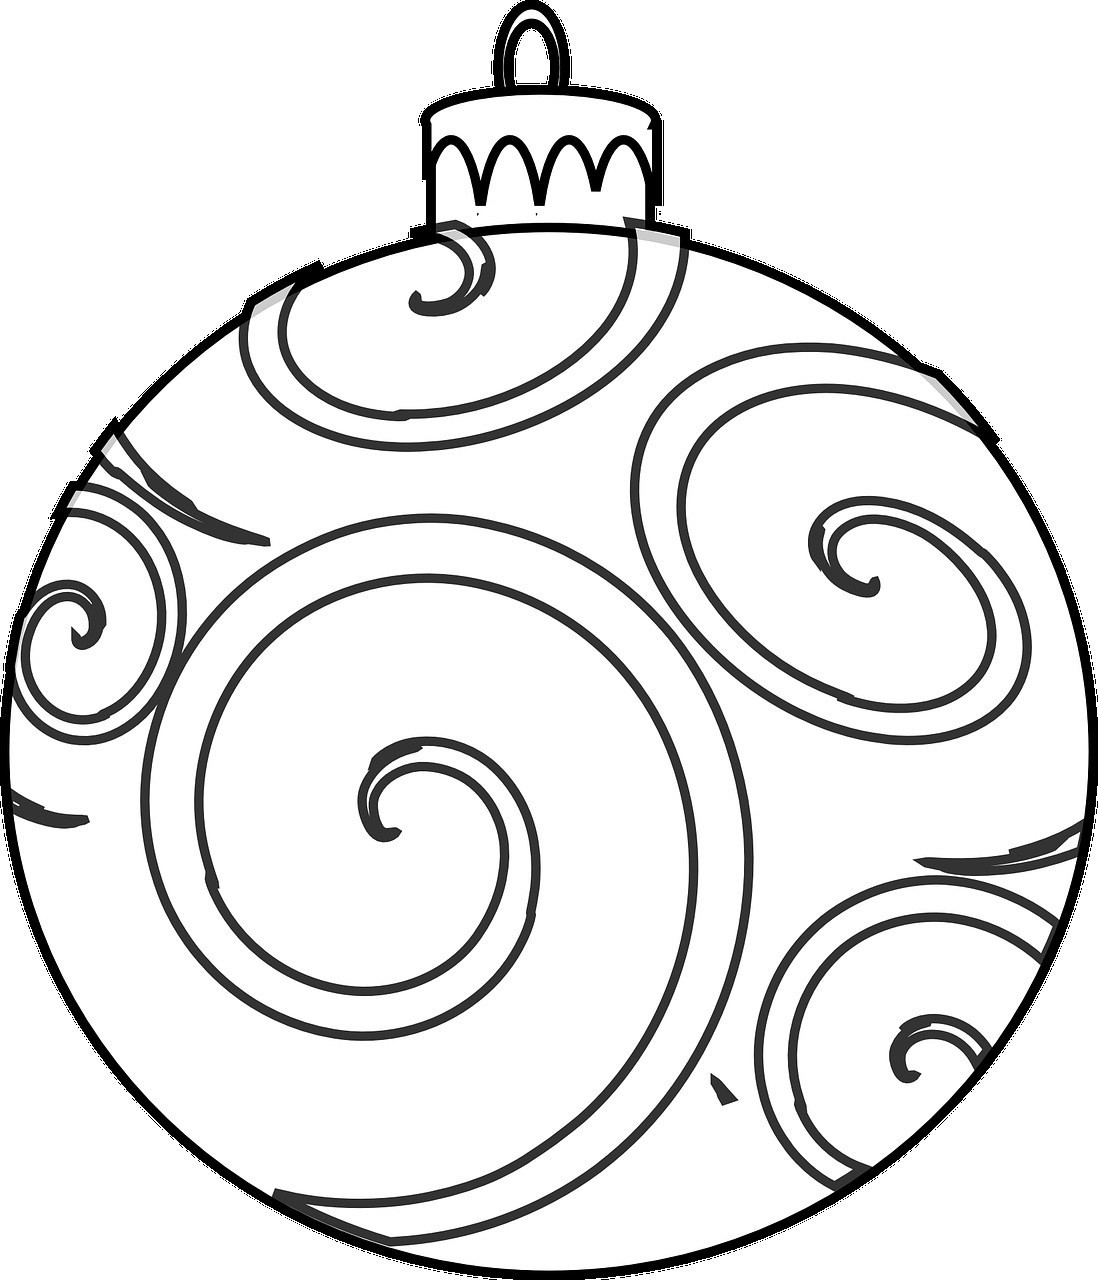 Christmas Coloring Ornaments With Pages Decorations Printable Page For Kids